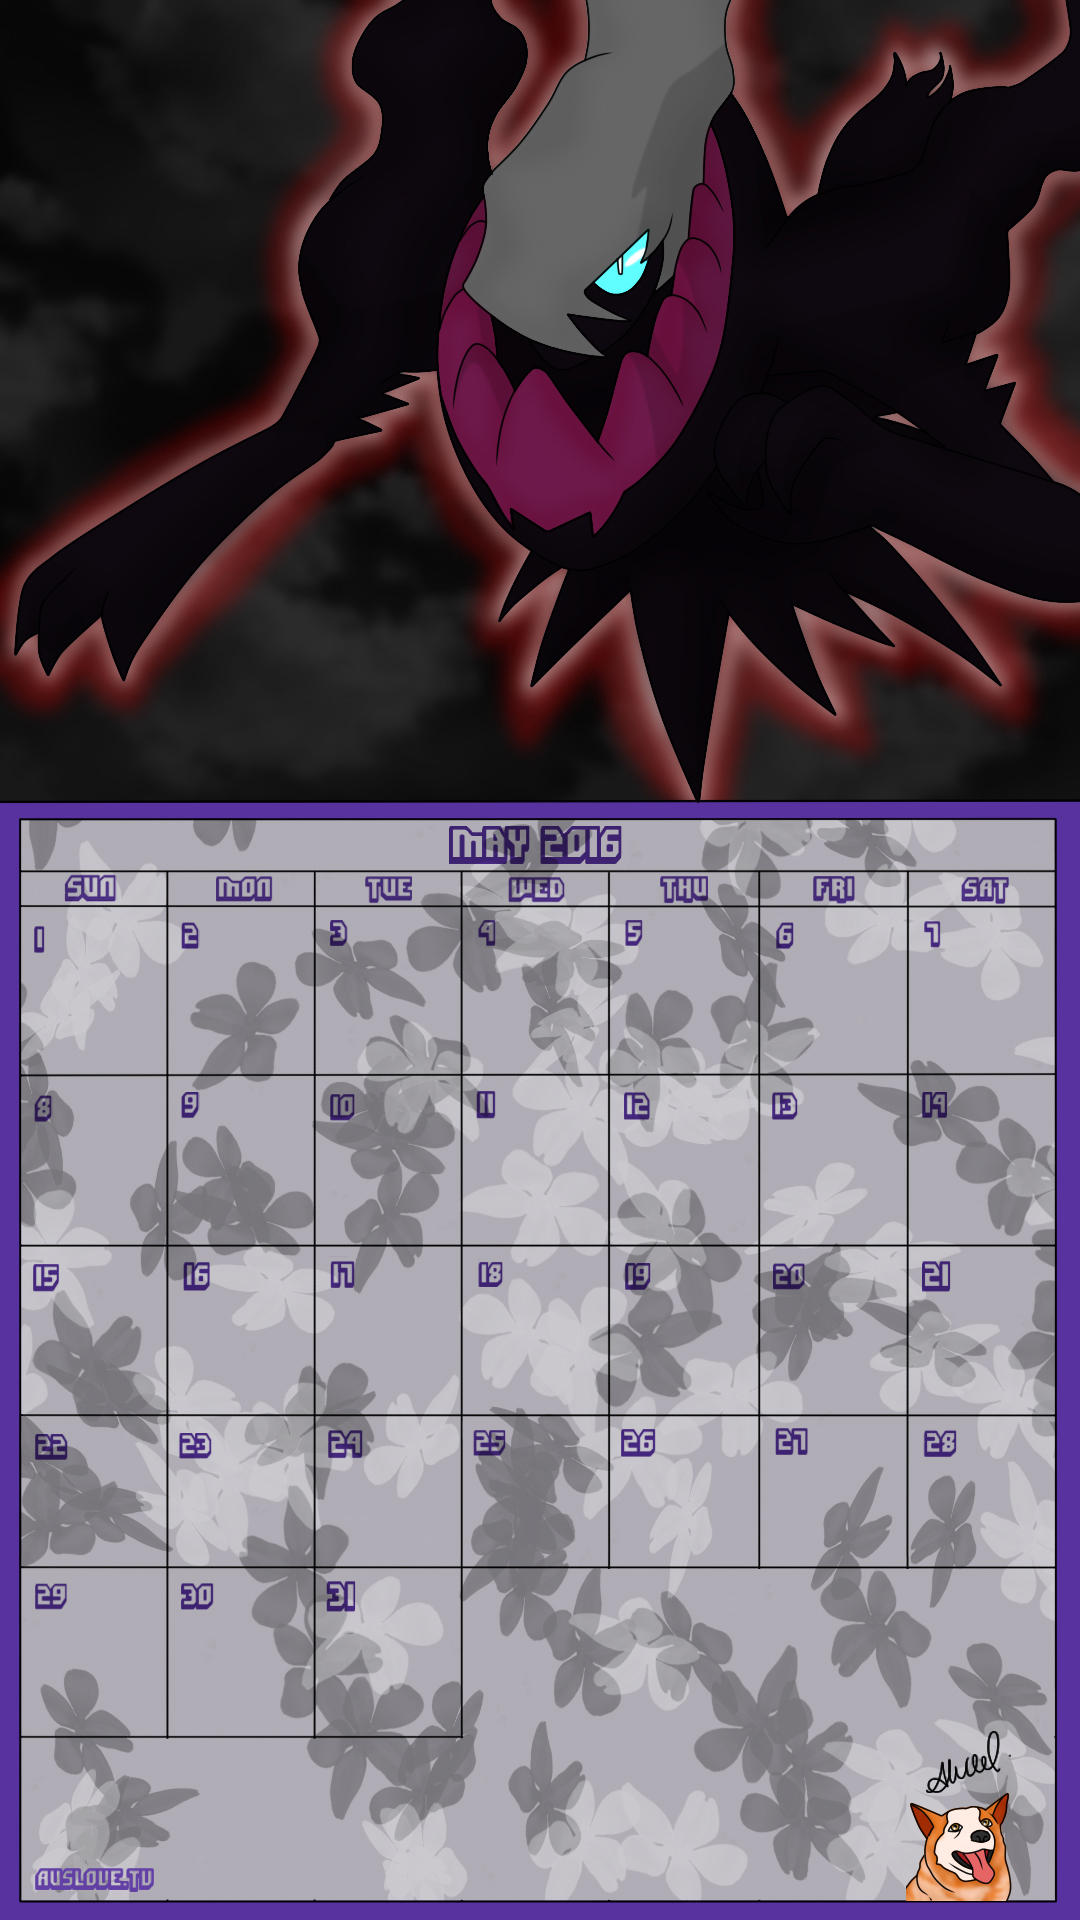 Pokemon 20th Anniversary Calender - May 2016 by AusLove